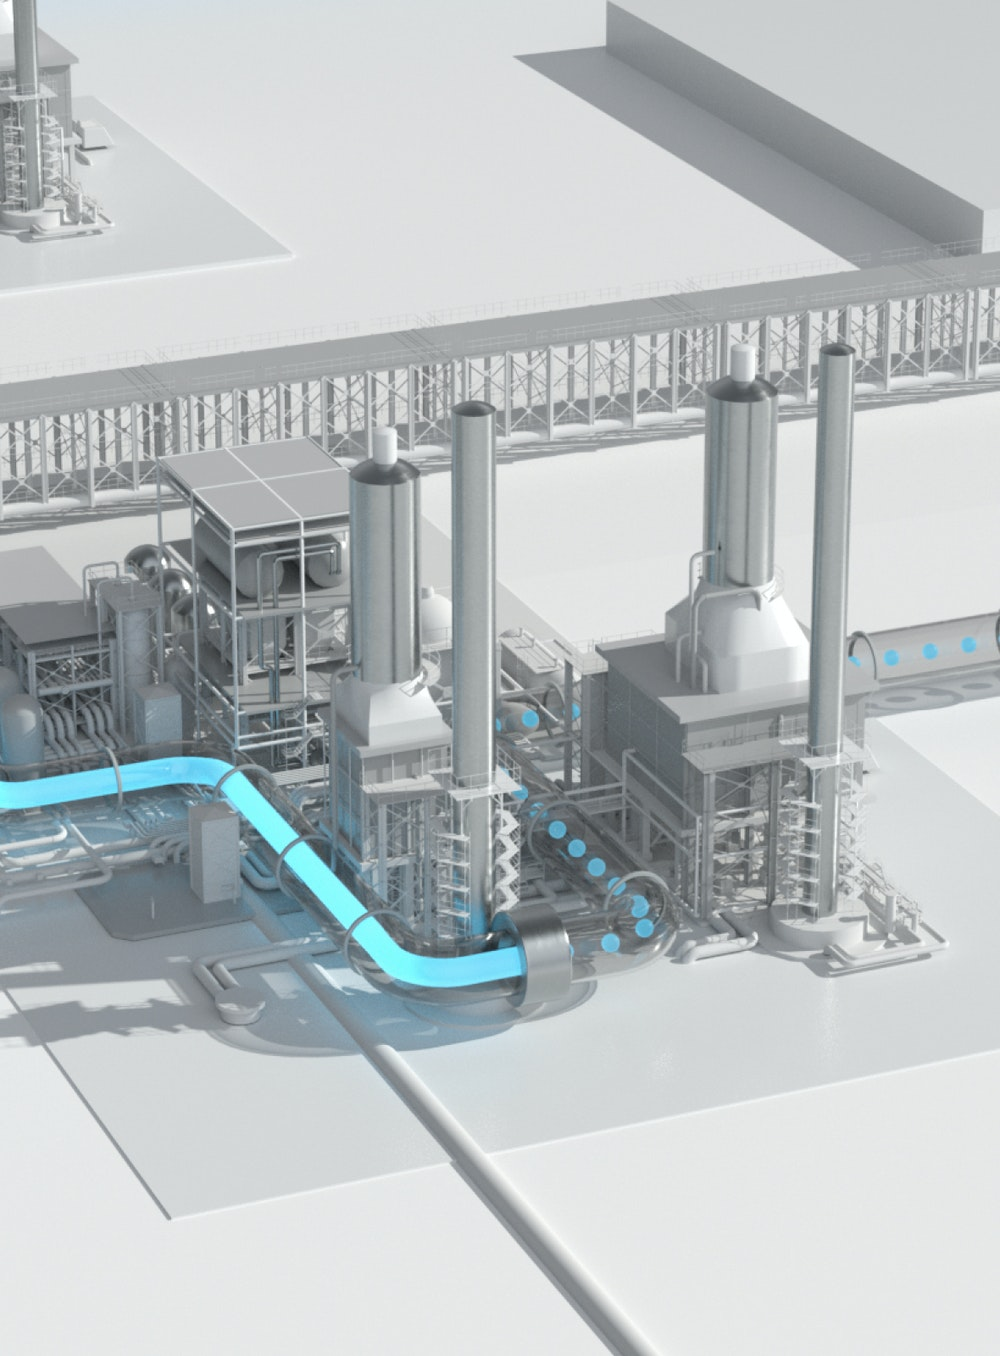 A crop of a rendering of the Nacero gasoline manufacturing process